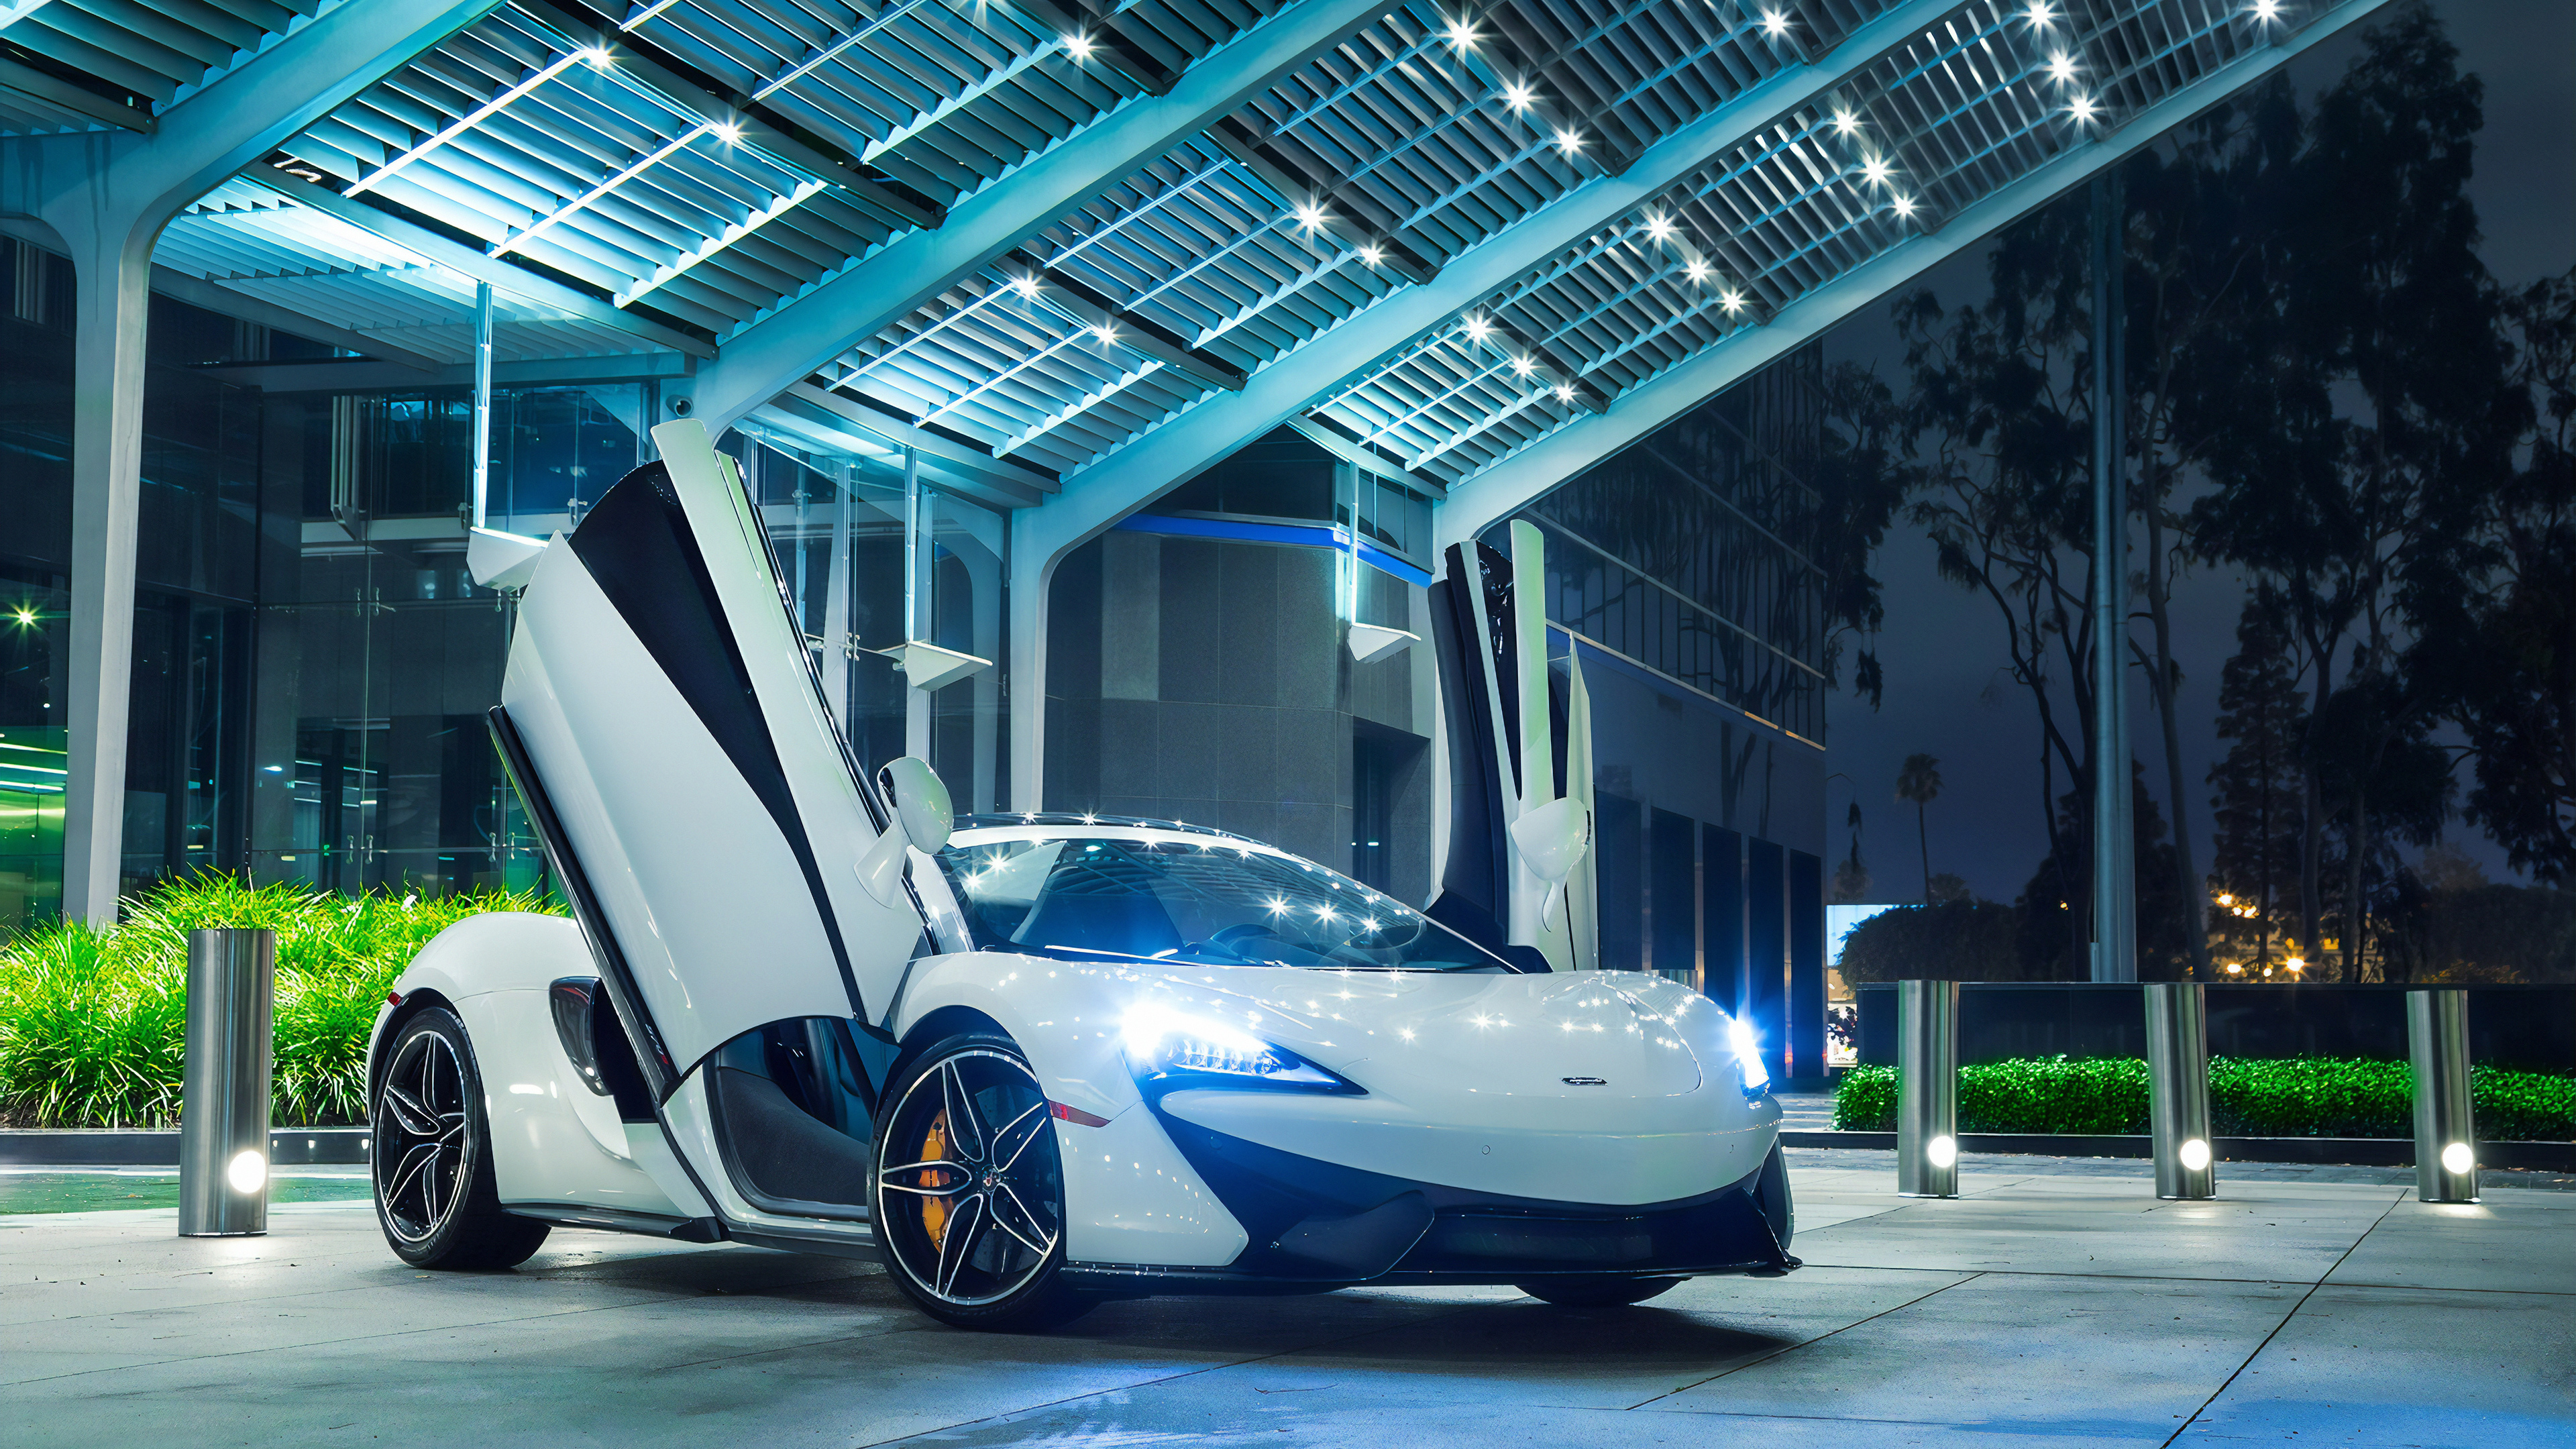 mclaren white 1570919104 - Mclaren White - mclaren wallpapers, hd-wallpapers, cars wallpapers, behance wallpapers, 4k-wallpapers